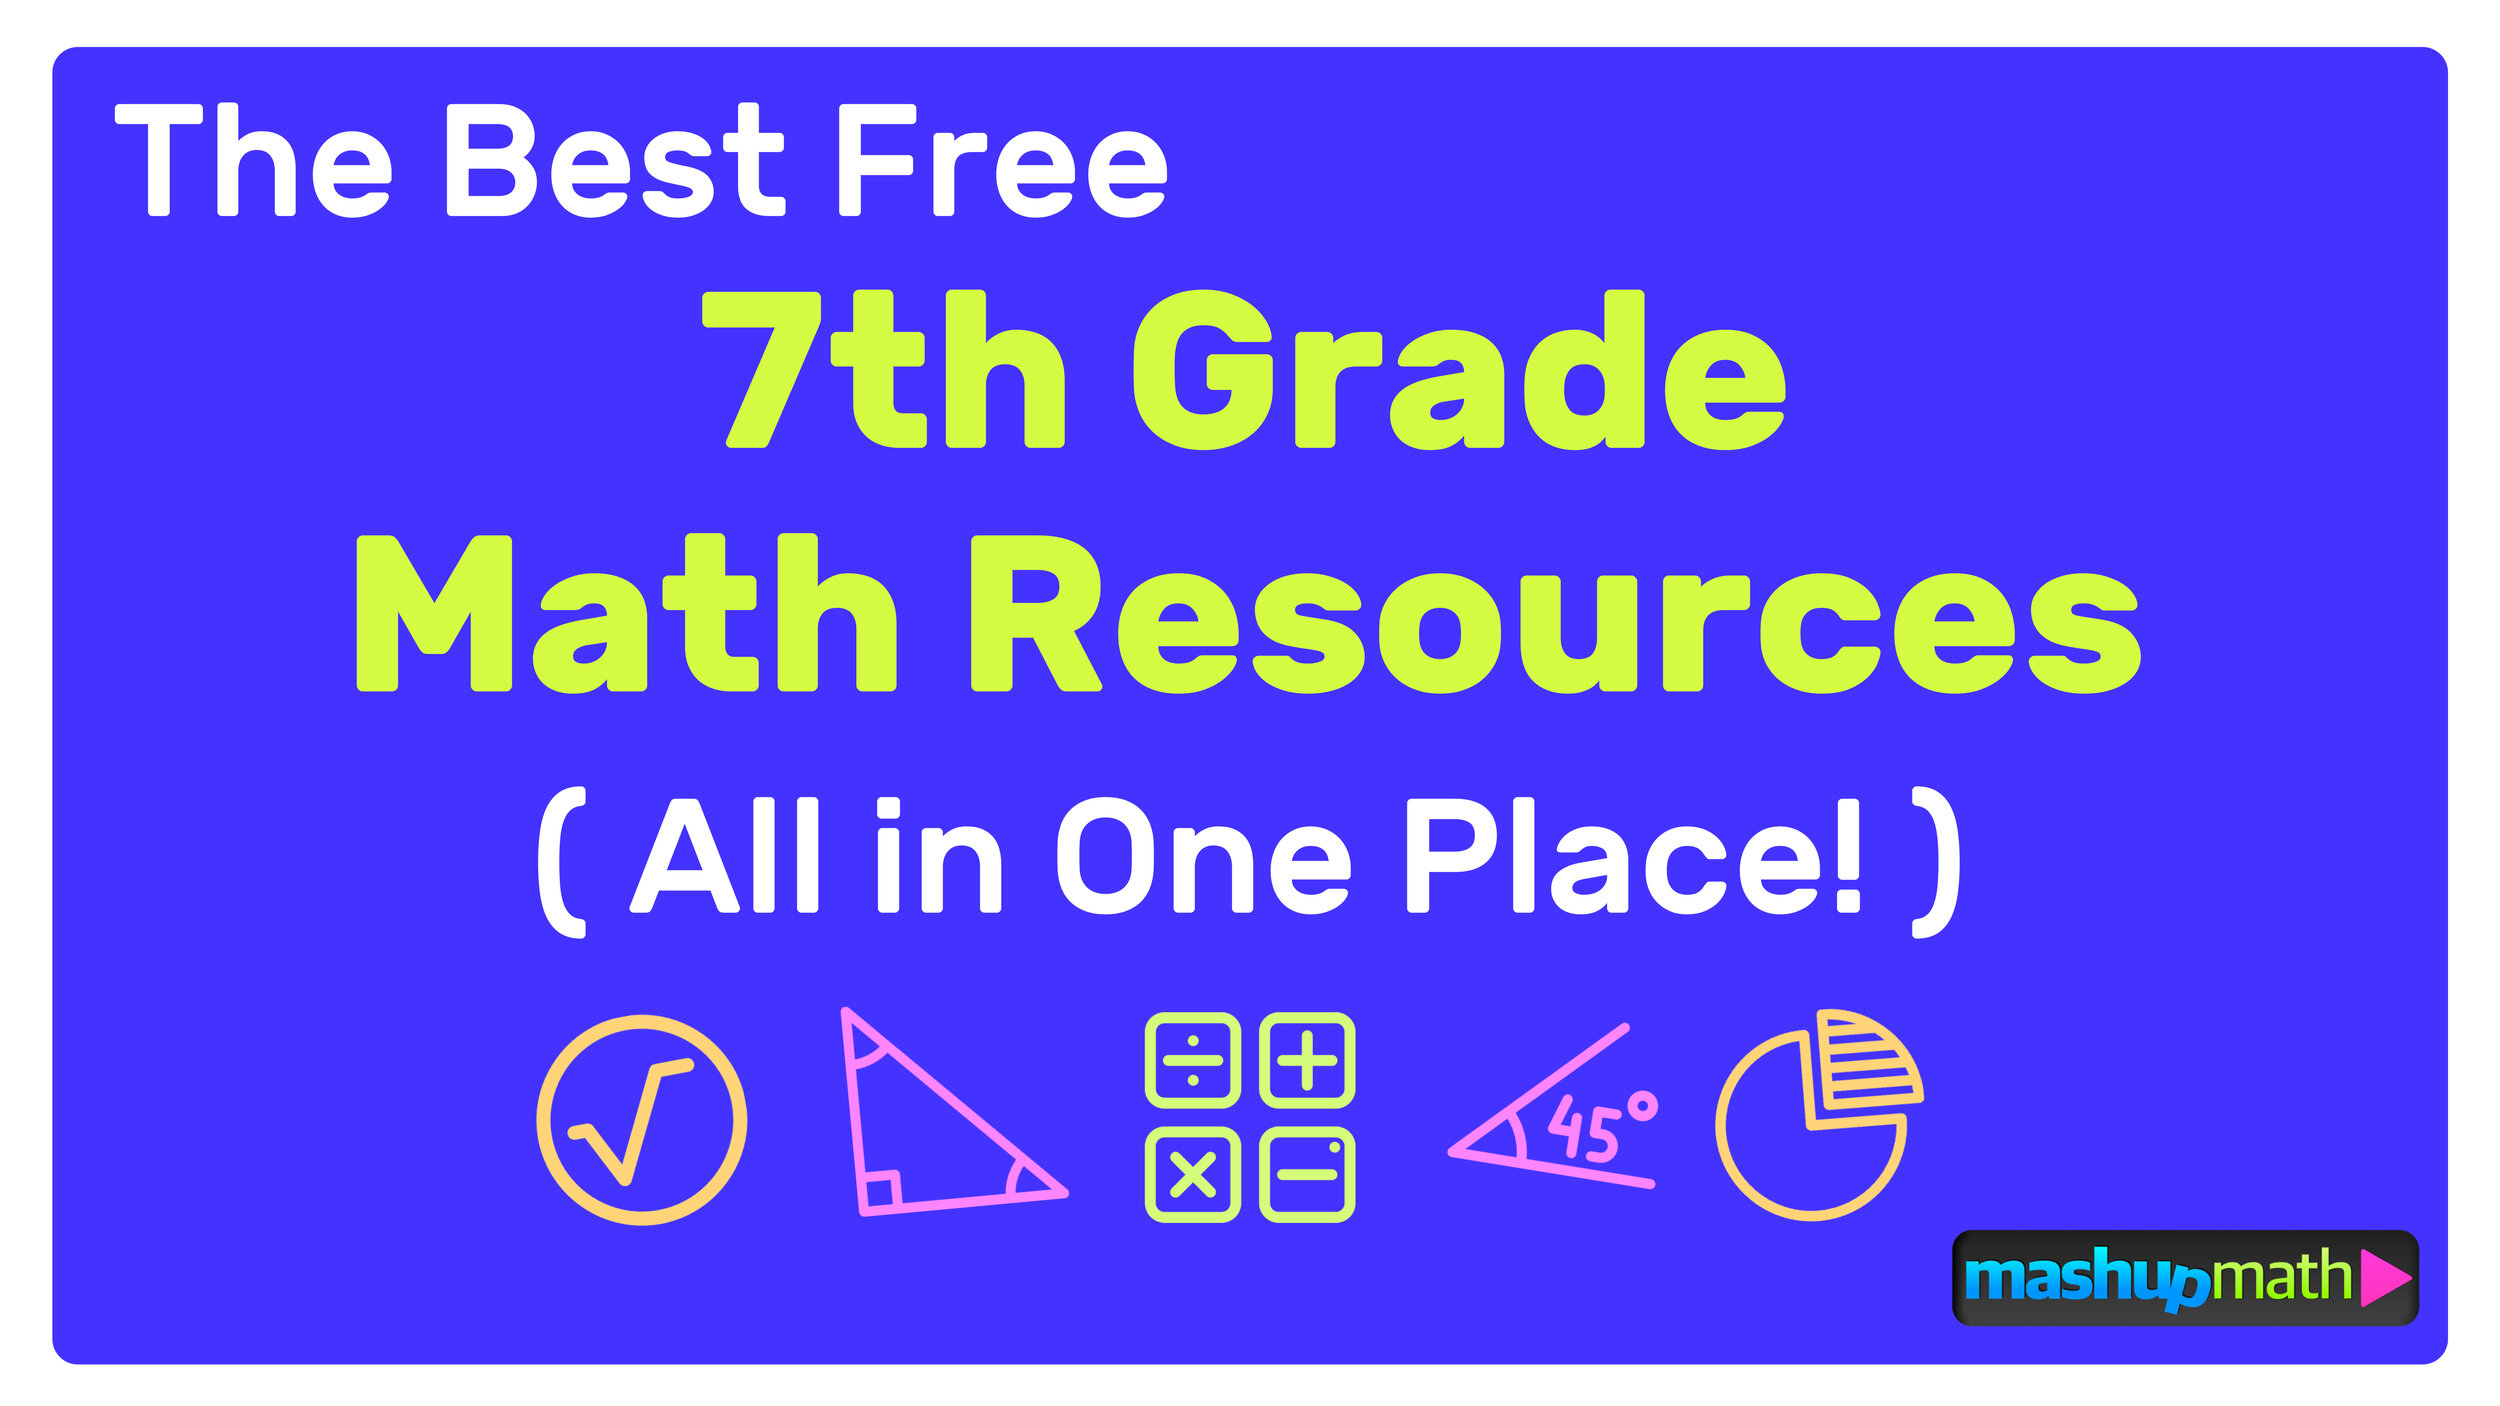 The Best Free 7th Grade Math Resources: Complete List! — Mashup Math